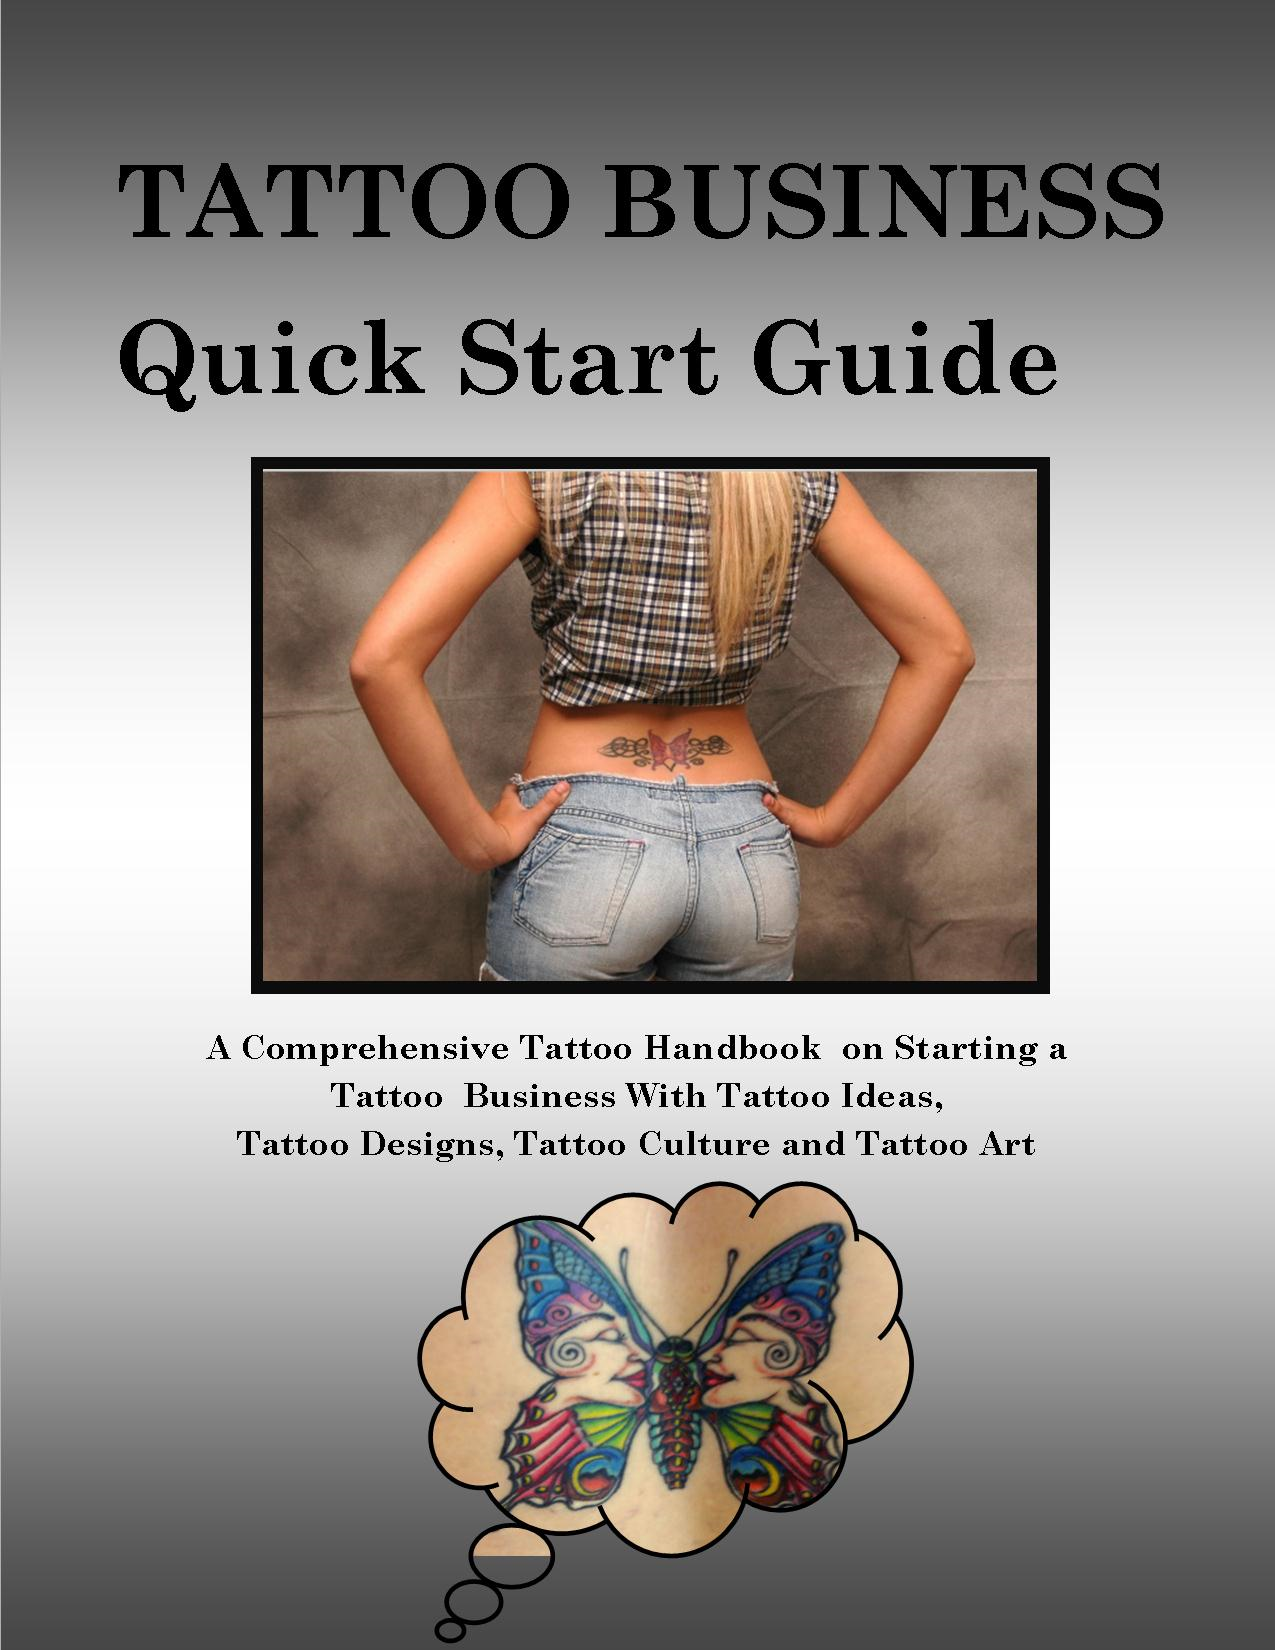 Tattoo Business Quick Start Guide